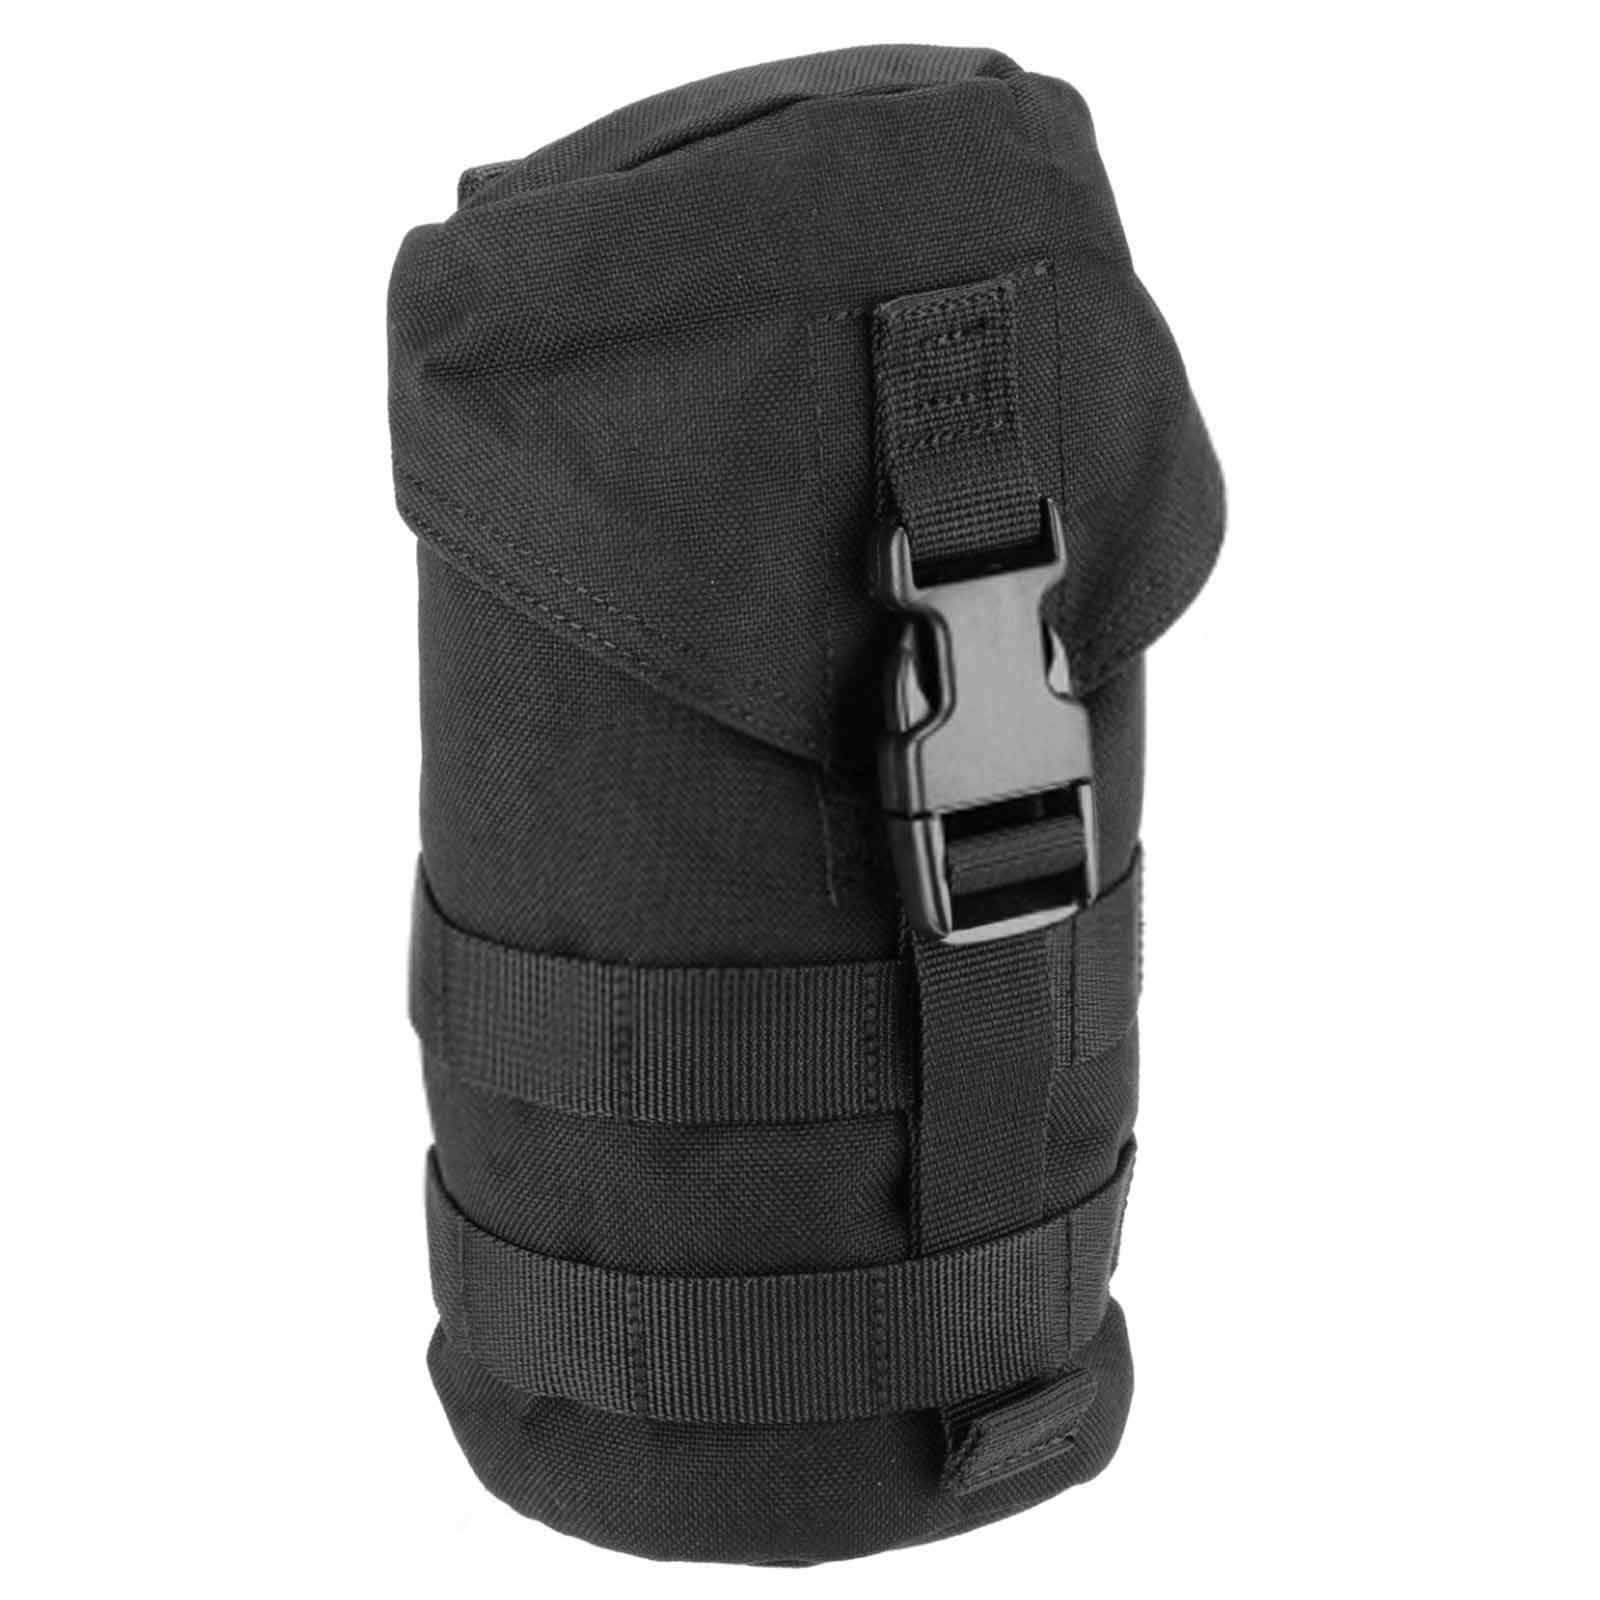 Tasca Porta Borraccia Utility Softair in Cordura Caricatori Esausti Nera 5.11